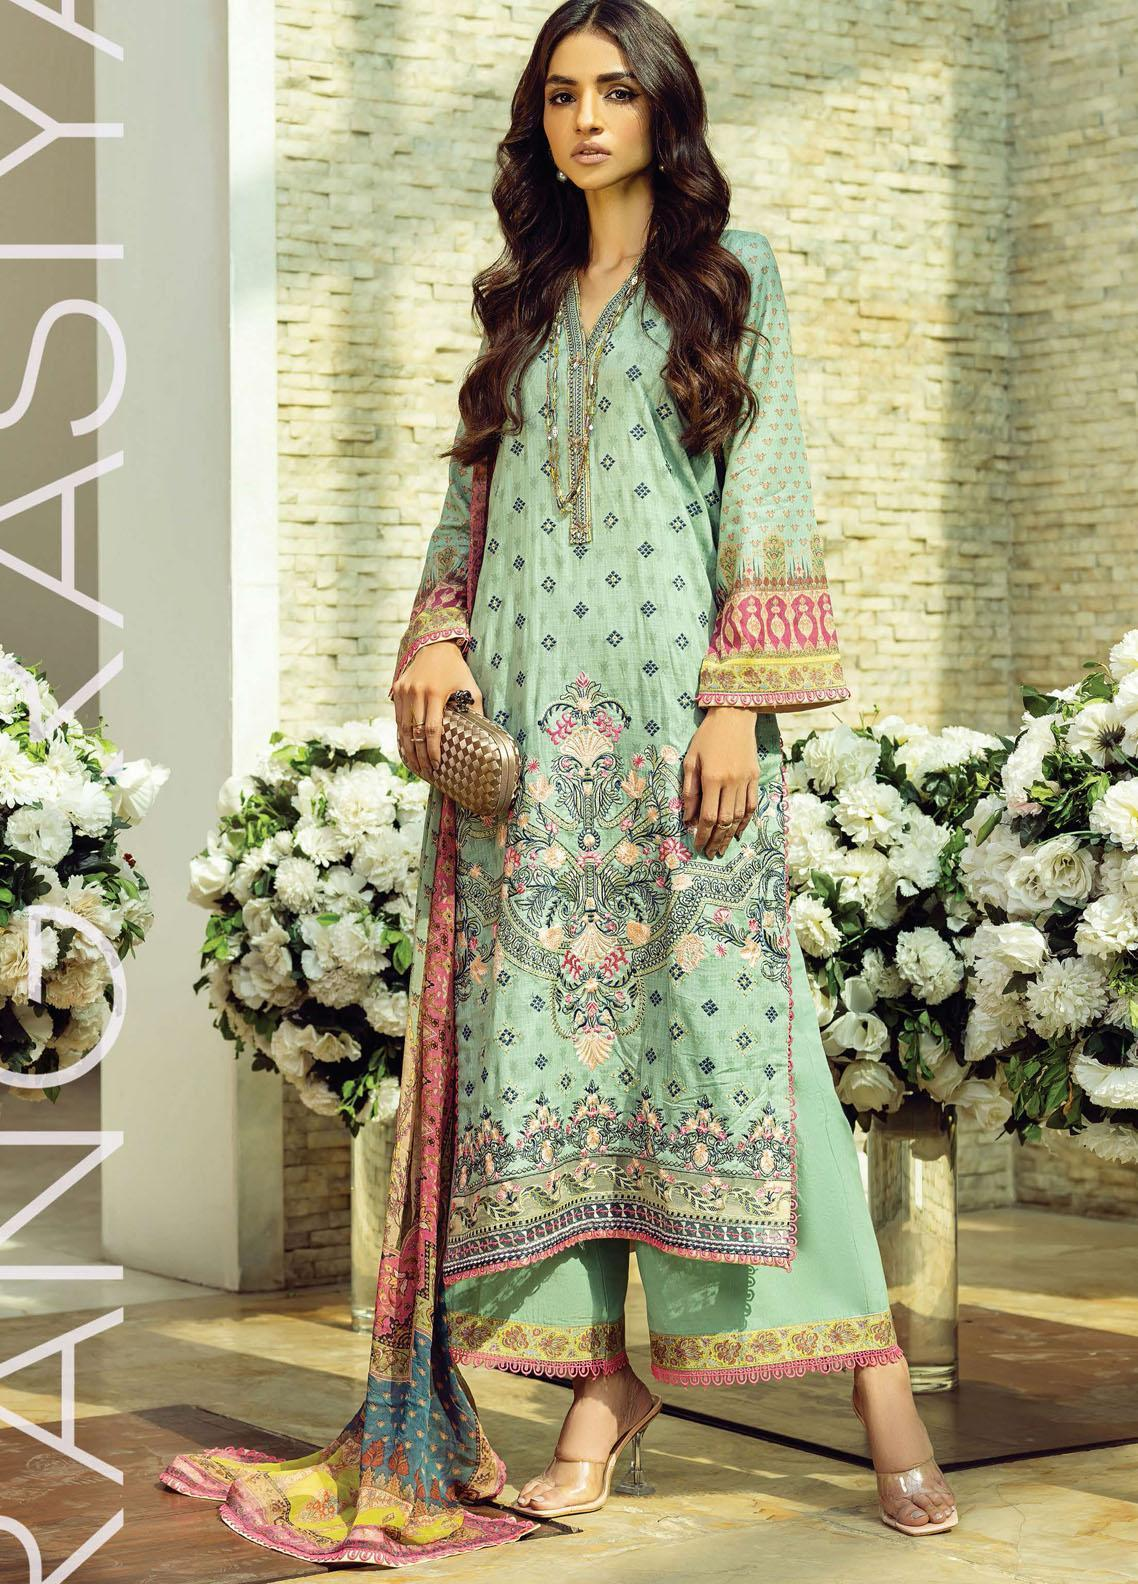 Florence By Rang Rasiya Embroidered Lawn Suits Unstitched 3 Piece RR21FF 05 Nevile - Festive Collection